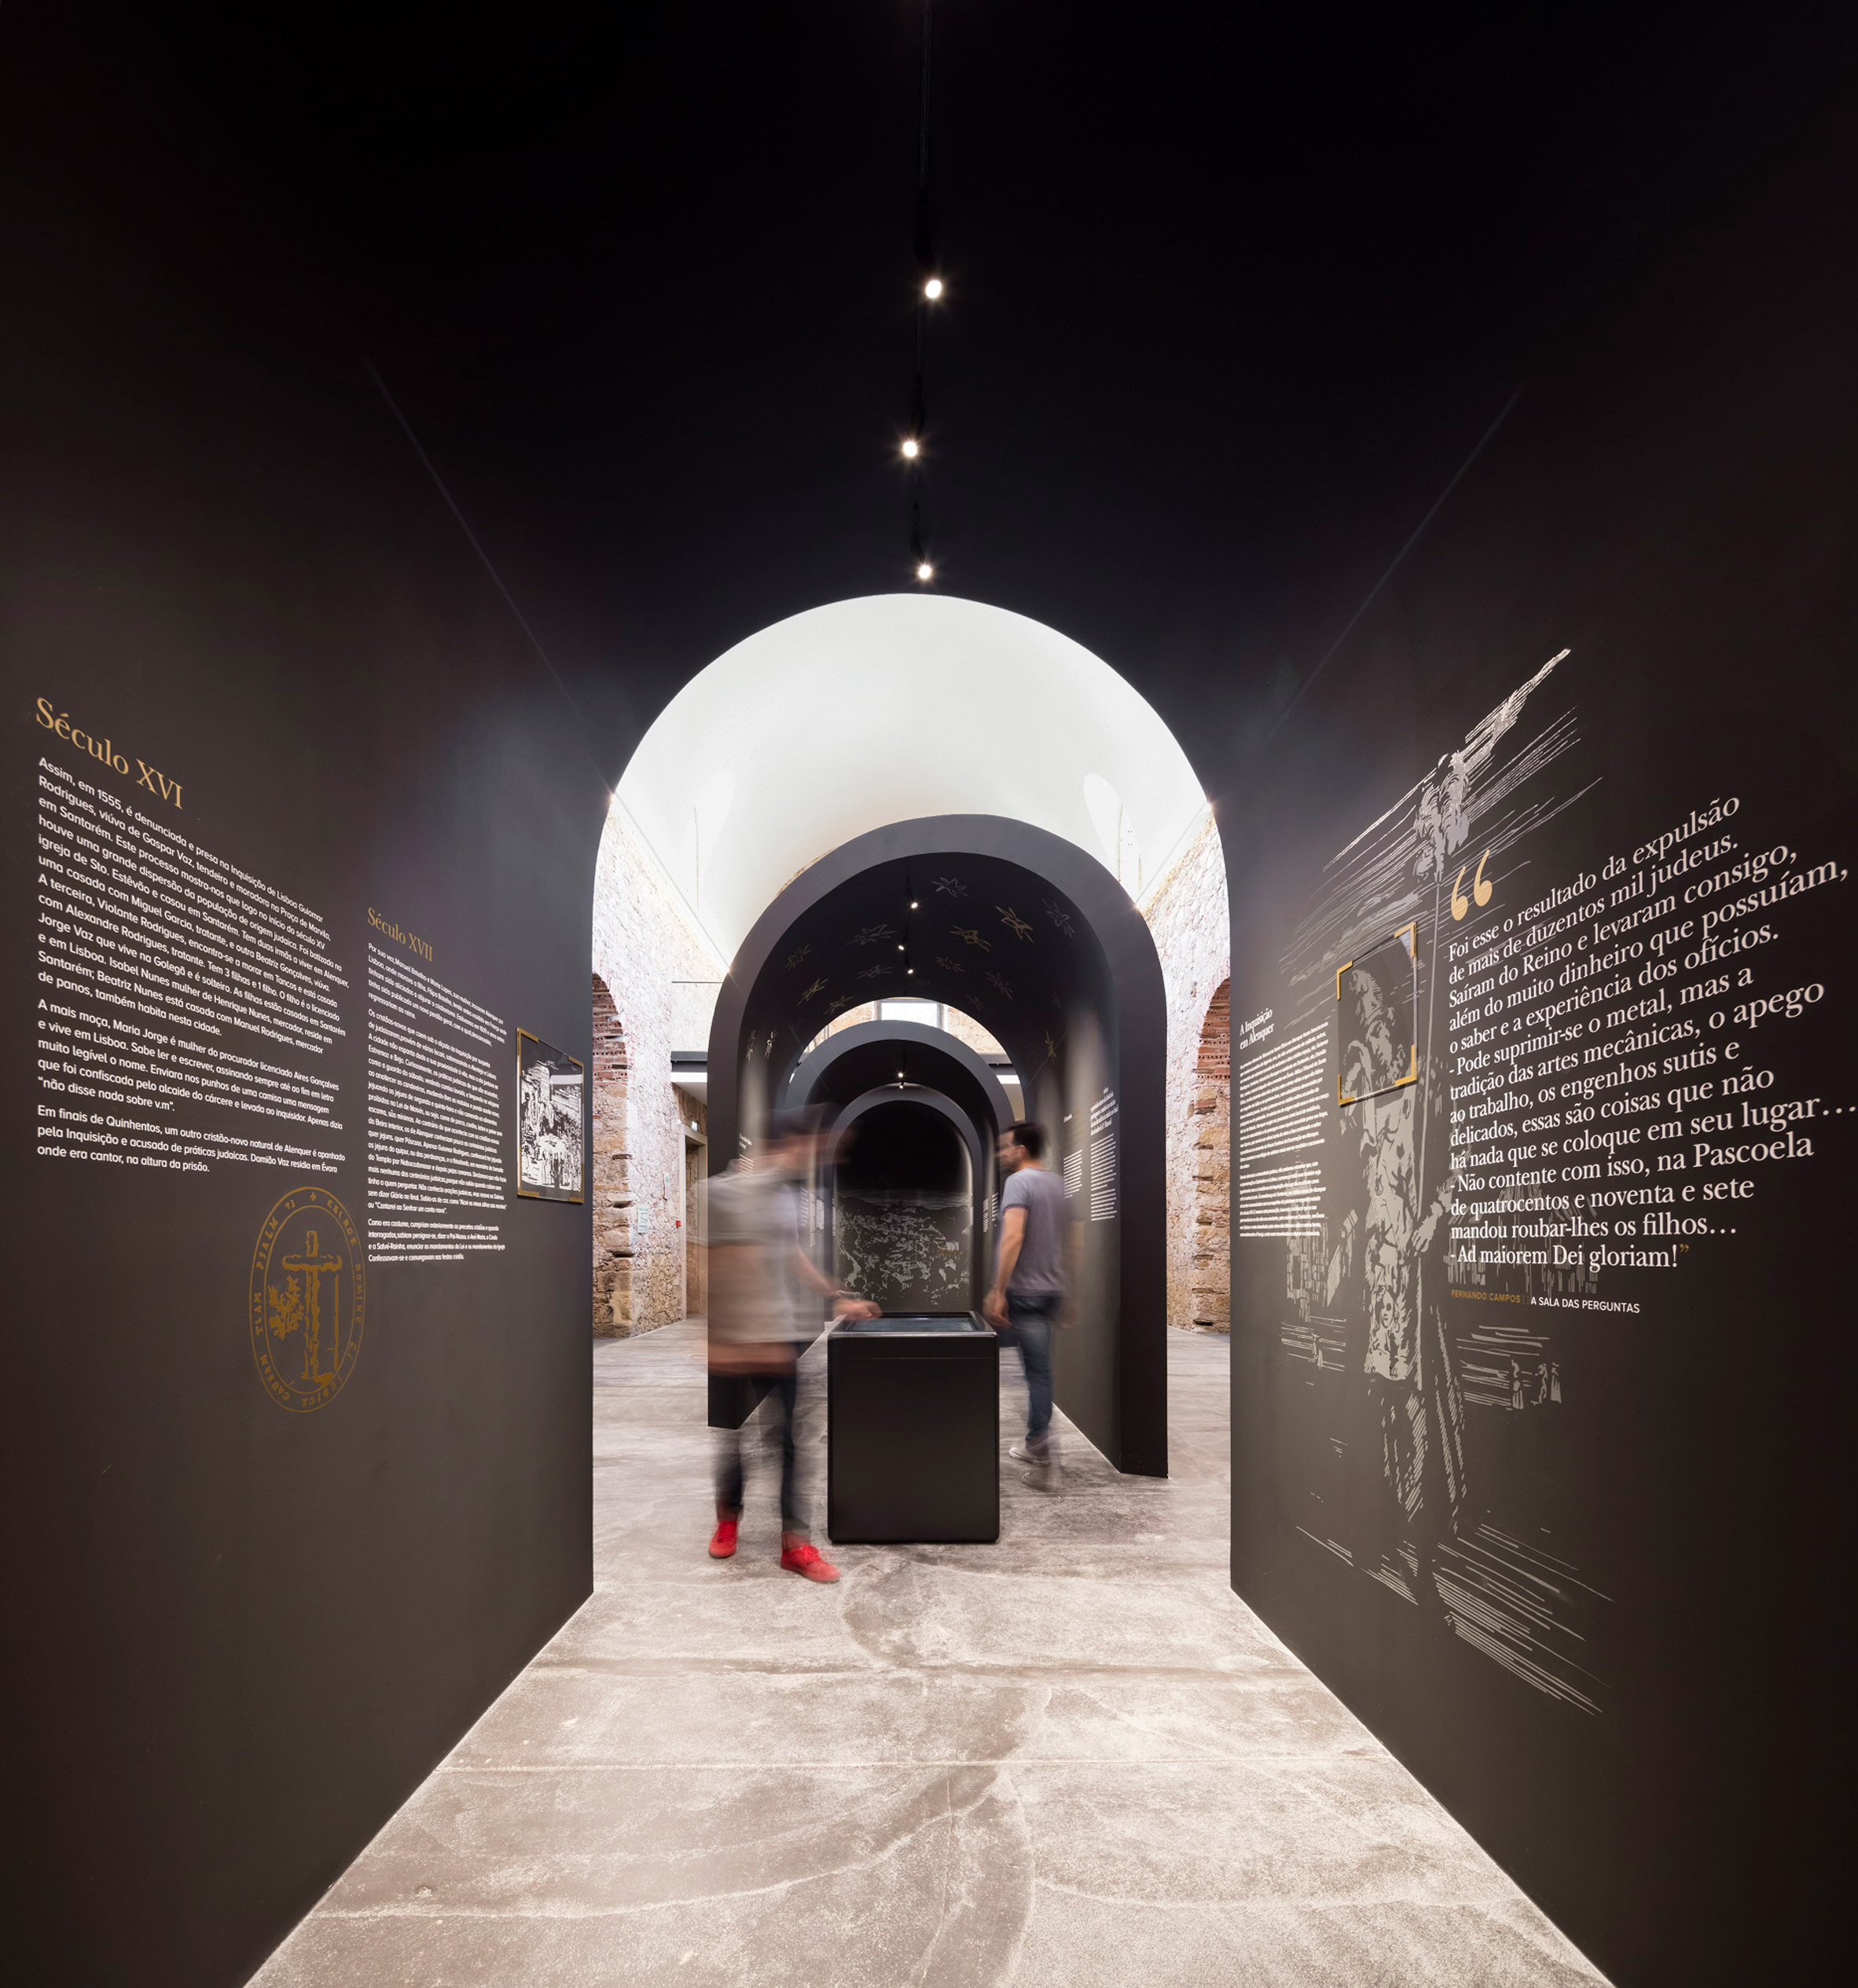 This restored church inAlenquer, central Portugal has been repurposed bySpaceworkers to include an arched exhibition space that commemoratesthe life and historical legacy of Portuguese philosopher and scholar Damião de Gois.